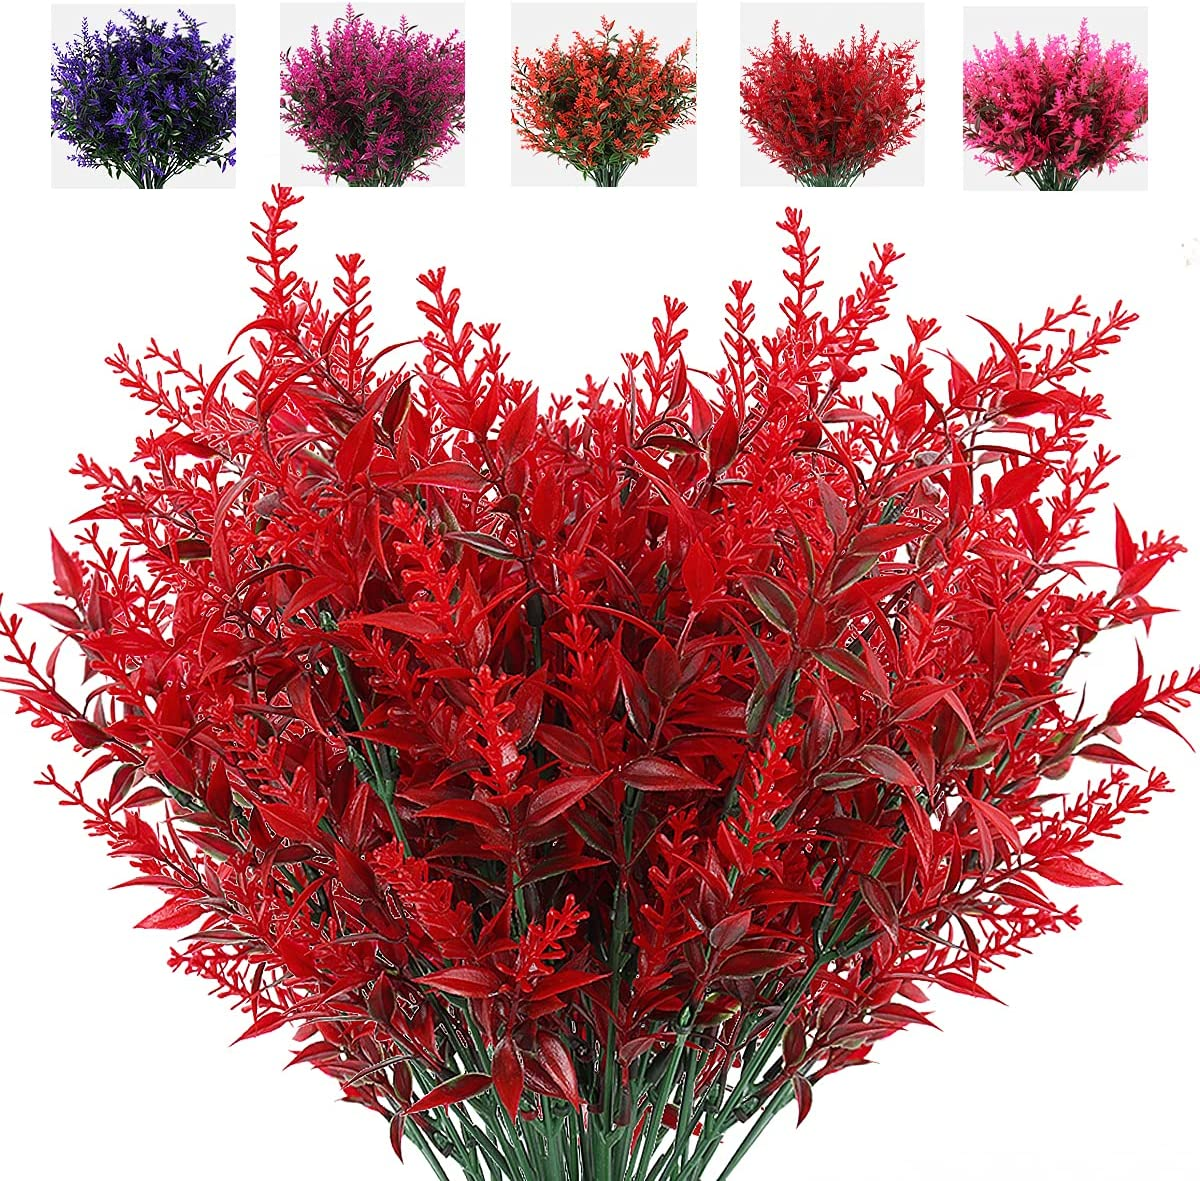 Artificial Outdoor Flowers, 8pcs Faux Outdoor Plant Plastic Lavender Bouquet,UV Resistant Flowers,Spring Decor,Lifelike Natural Fake Plant to Brighten Up Your Home (Red)